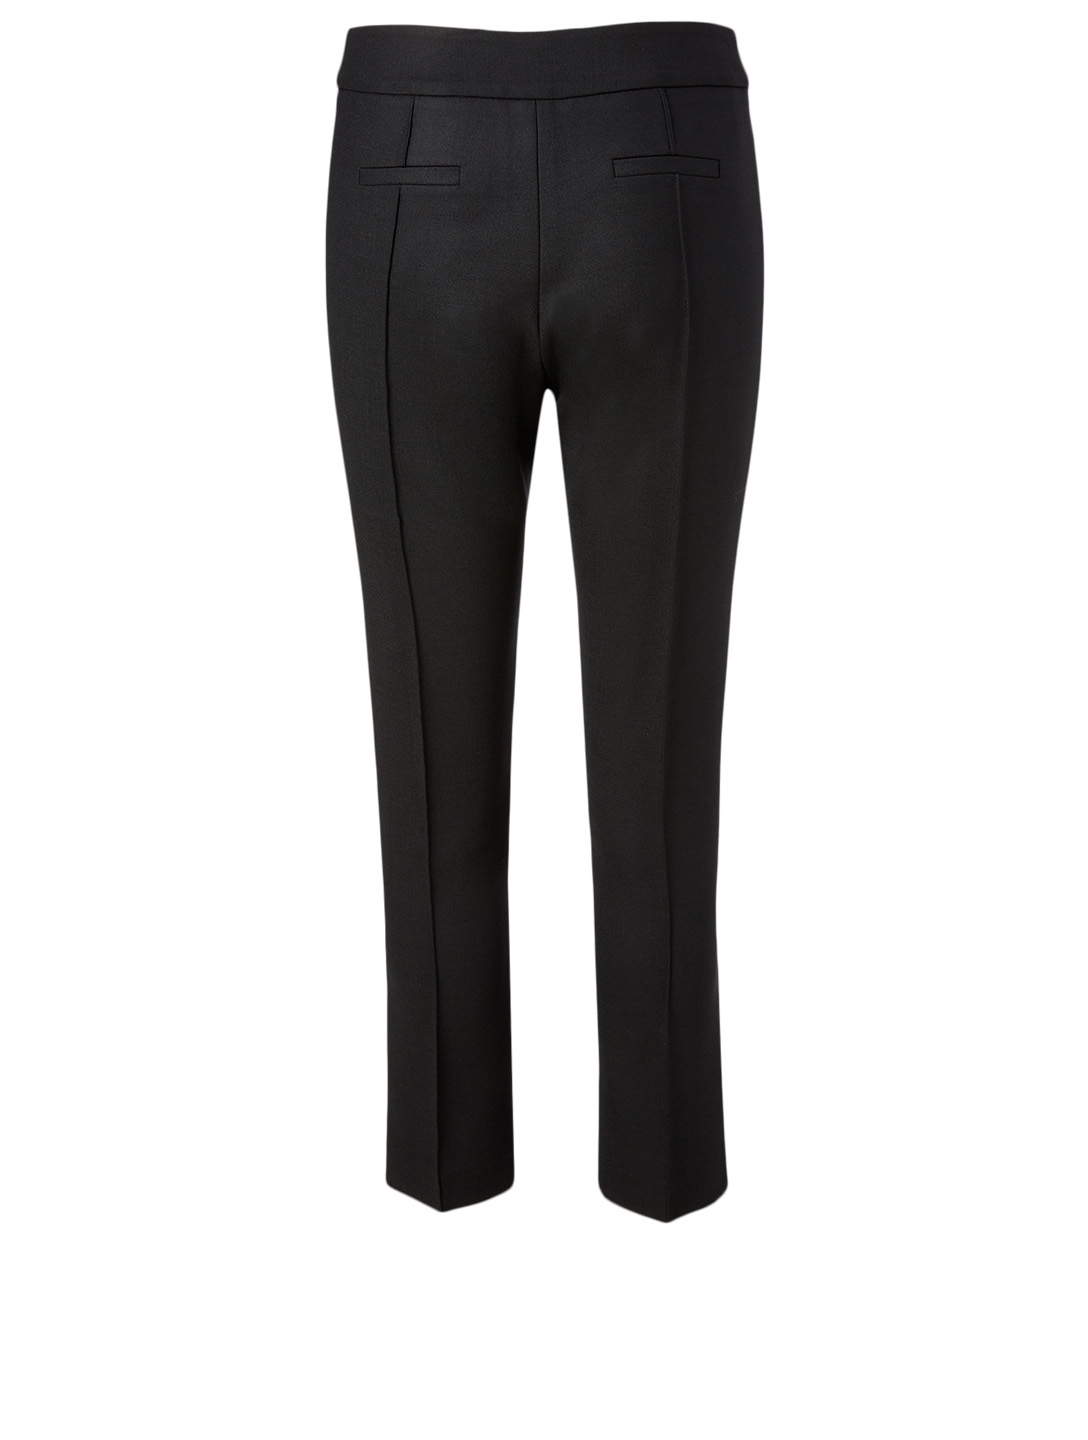 SMYTHE Wool-Blend Stovepipe Pants Women's Black